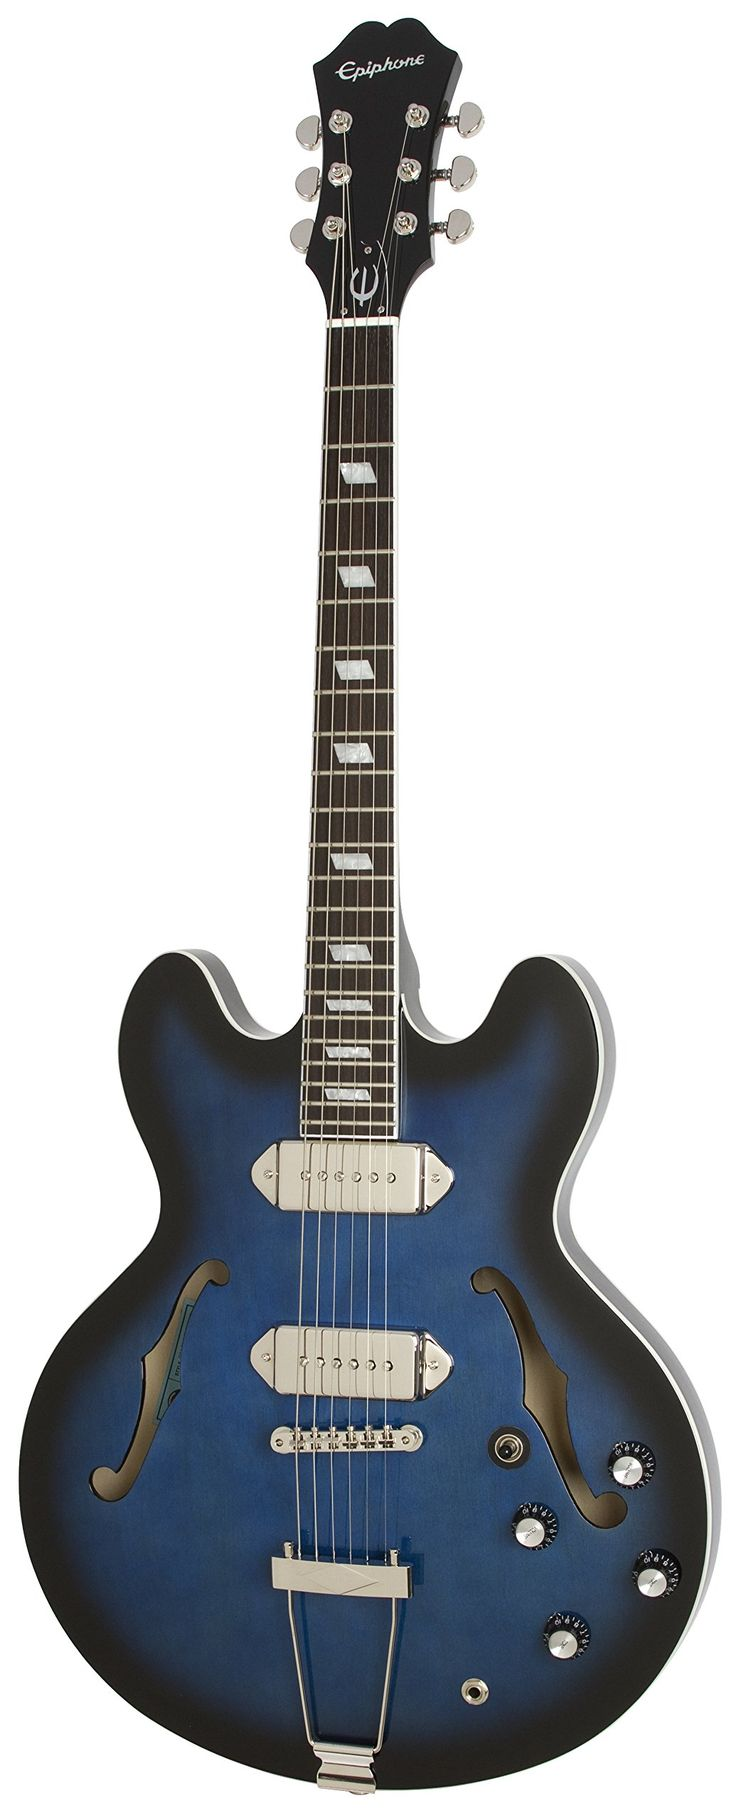 """Epiphone Limited Edition Gary Clark Jr. Casino Electric Guitar, Black/Blue. Gary Clark Jr Casino has a laminated 5-ply Maple/Birch body and Mahogany neck with a '60s Slim Taper D Profile set neck with a Rosewood fingerboard and Parallelogram inlays. This guitar is loaded with Gibson USA P-90T and P-90R pickups and black """"Top Hats"""" volume and tone control knobs. Now, Clark has joined with Epiphone to commemorate his debute major label album, Black & Blue, with a classic Casino design..."""